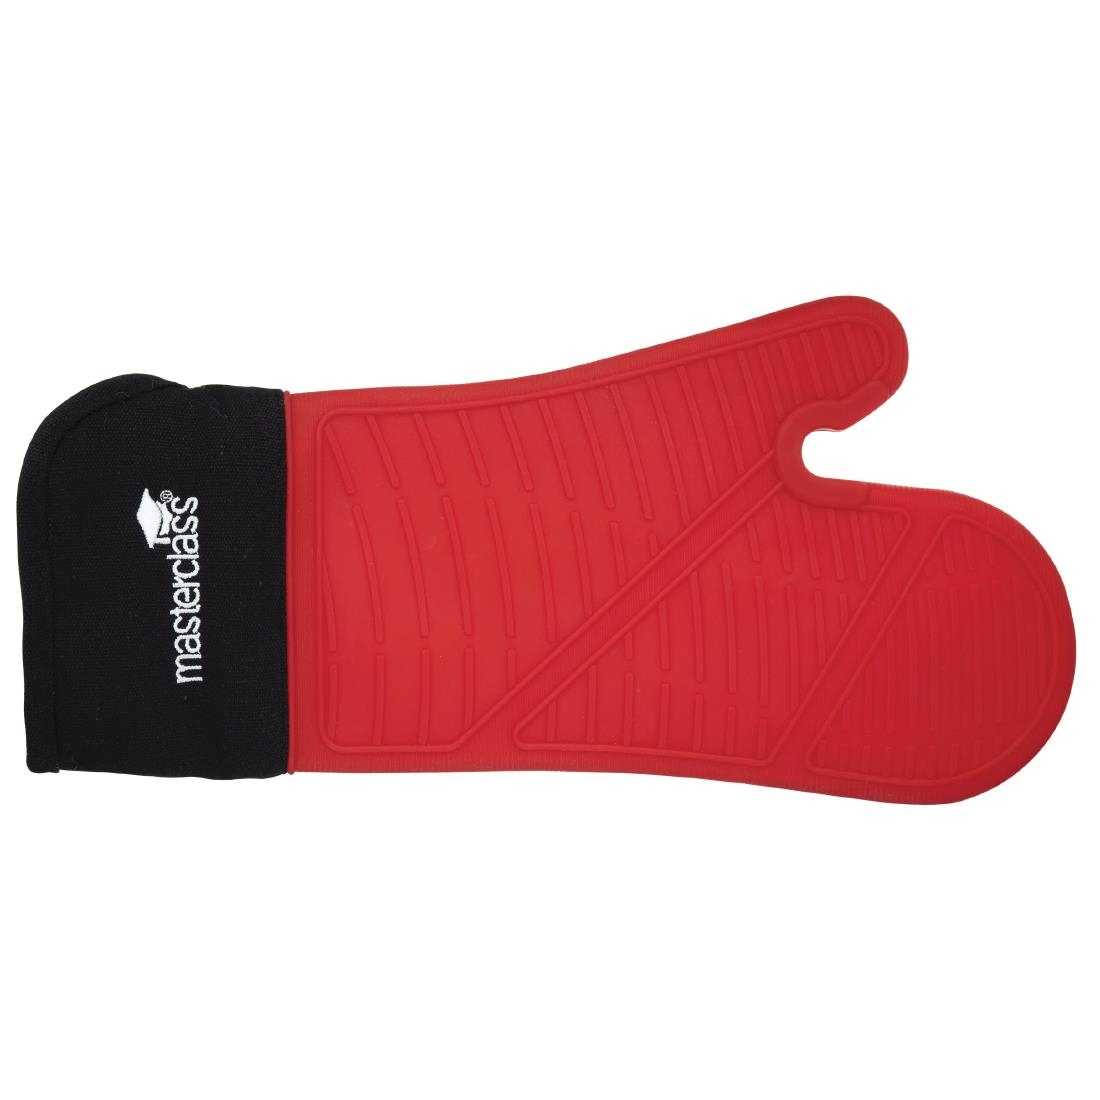 MasterClass Seamless Silicone Oven Mitt with Cotton Sleeve